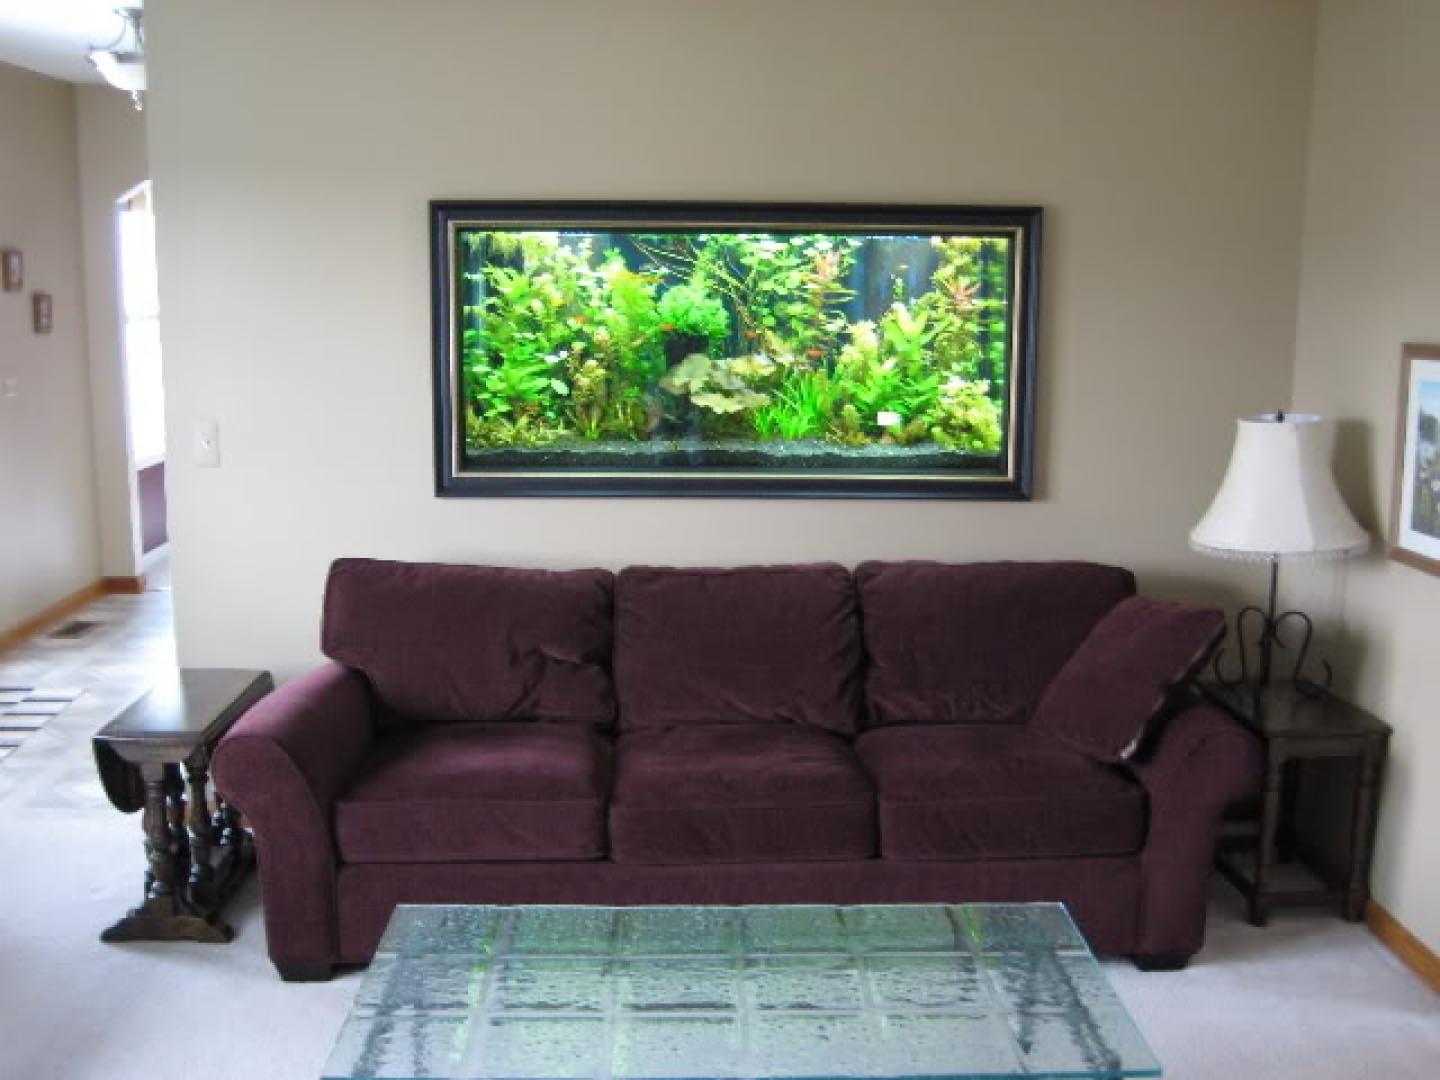 Wall mounted aquarium design aquarium design ideas for Aquarium interior designs pictures